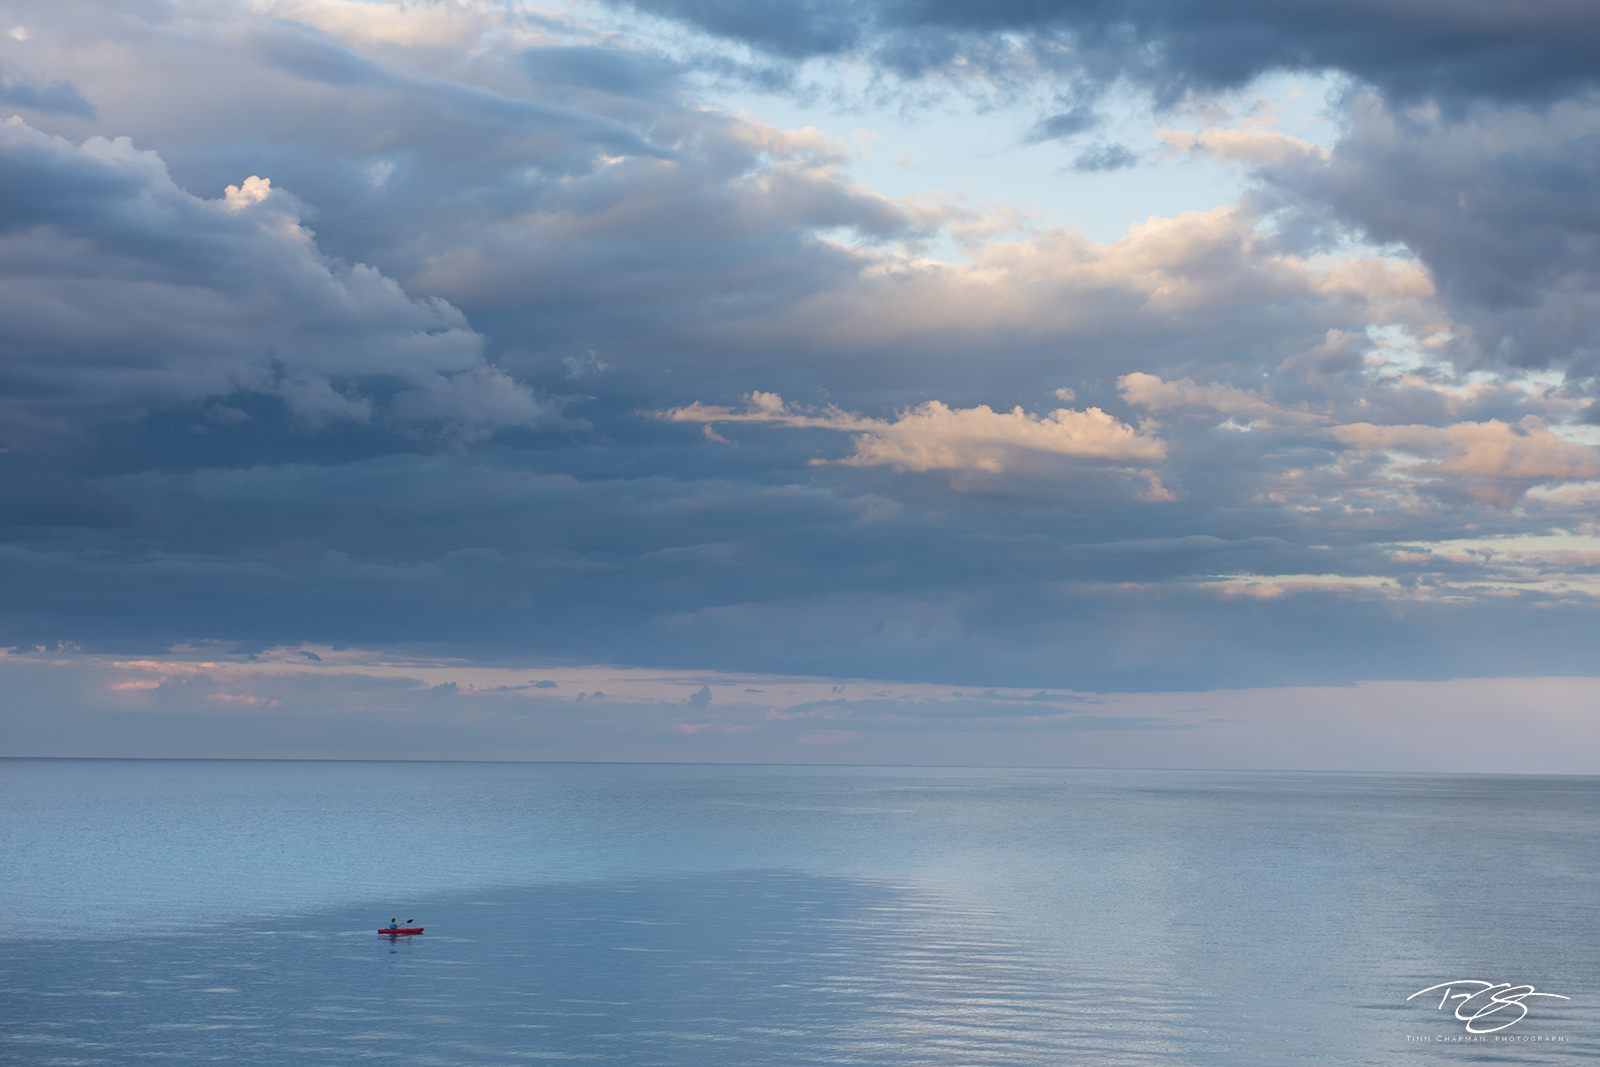 A solitary kayaker forges out into the expanse of the Great Big Sea.